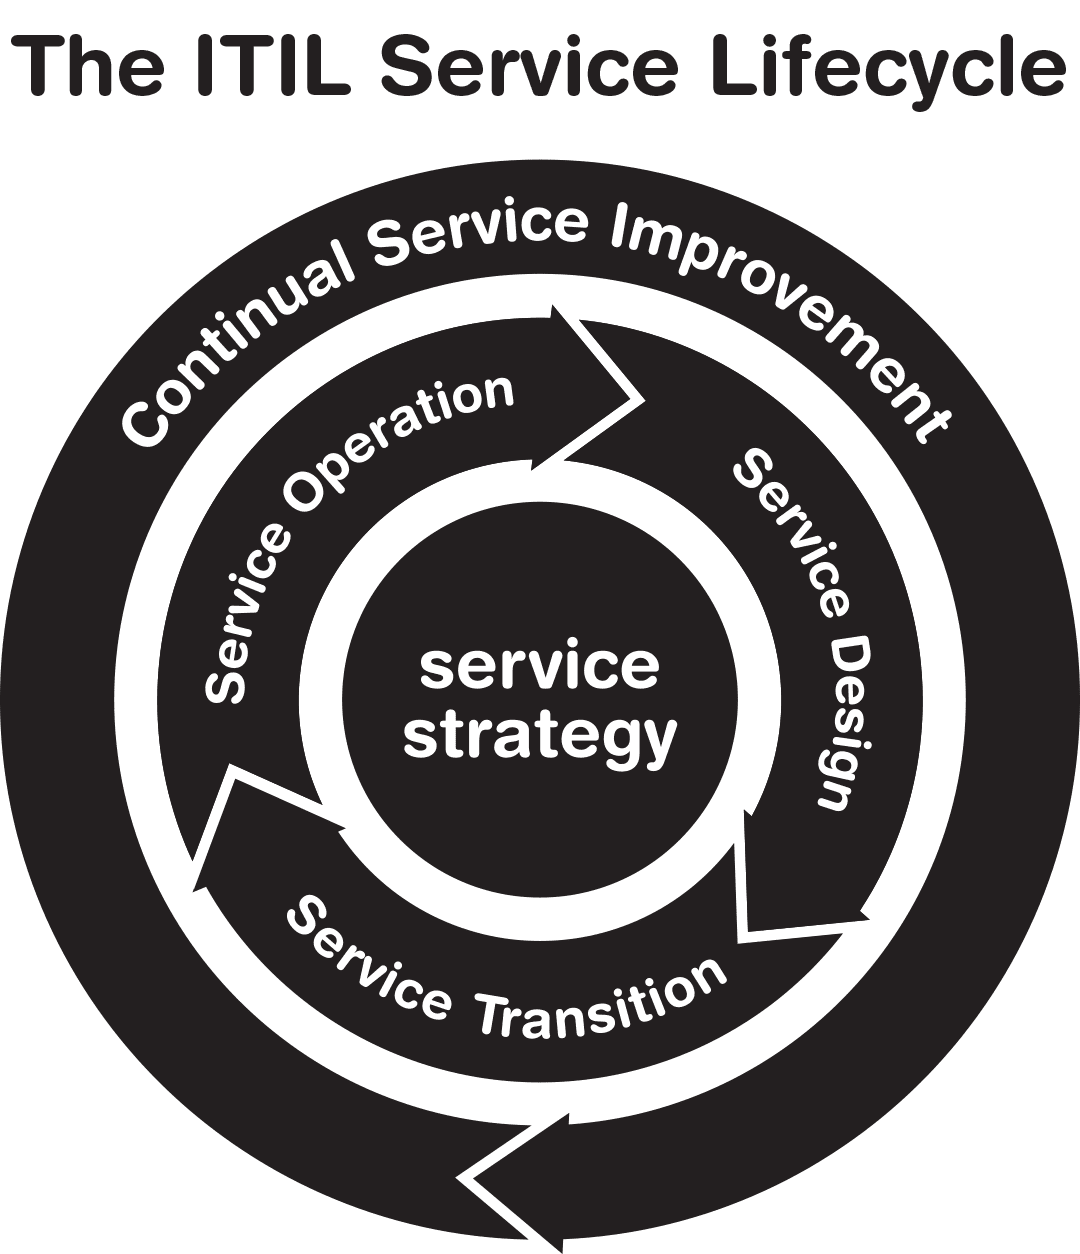 Service Transition is the culmination of a number of aspects from the phases that come before it, and also has a marked effect on the phases that come after it.